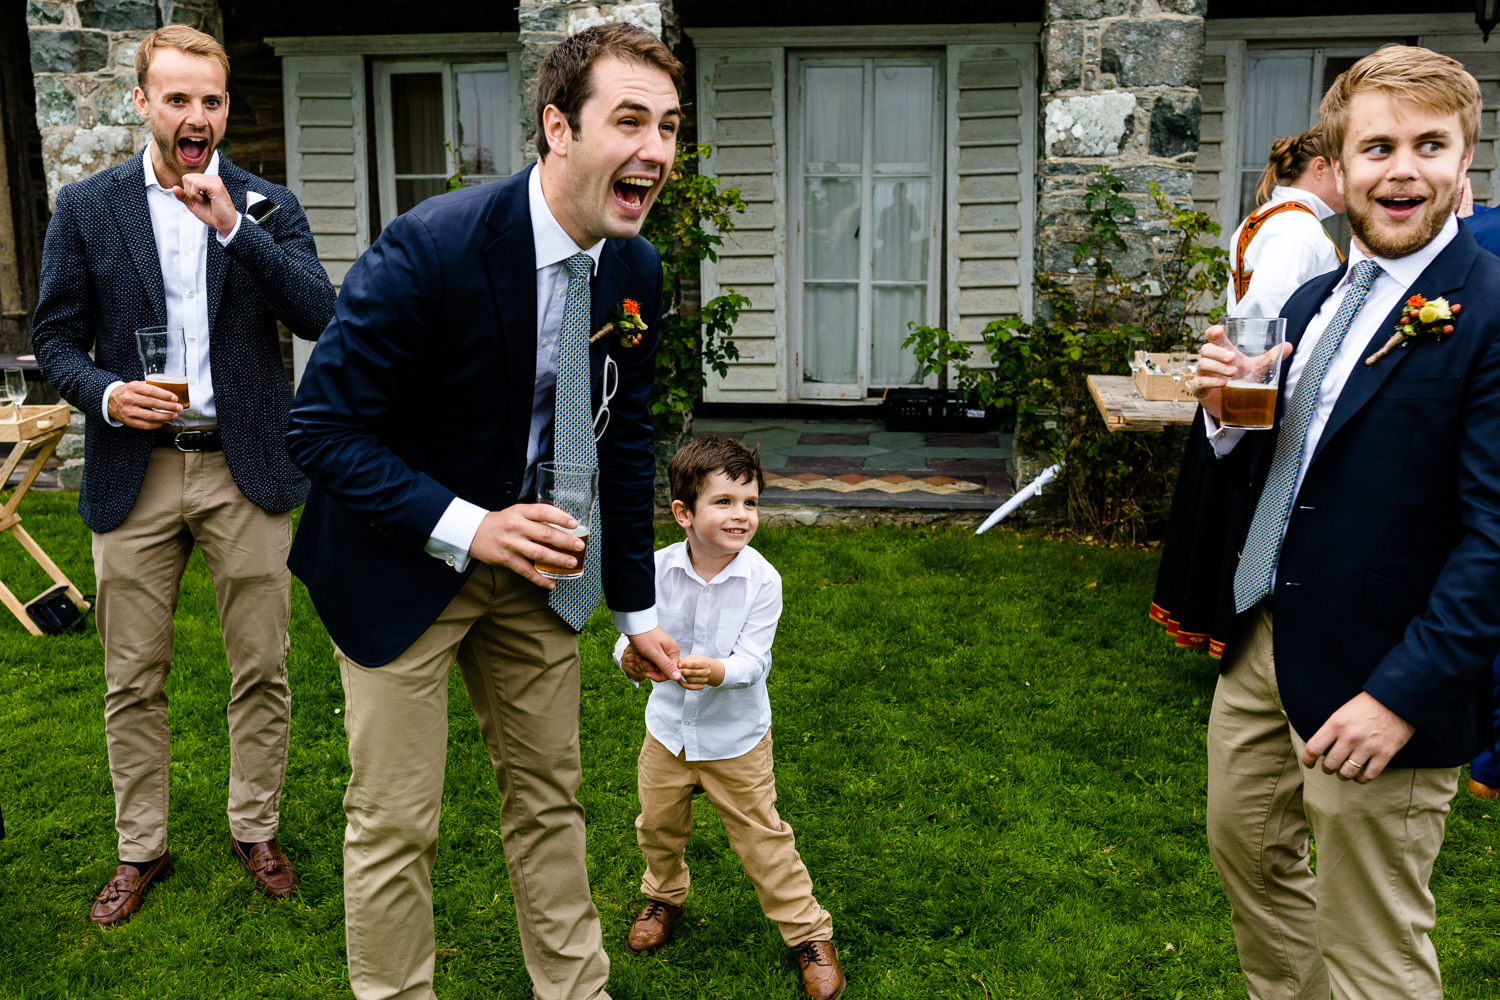 A groomsman laughing at what a young boy  has said, relaxed Anglesey wedding photo